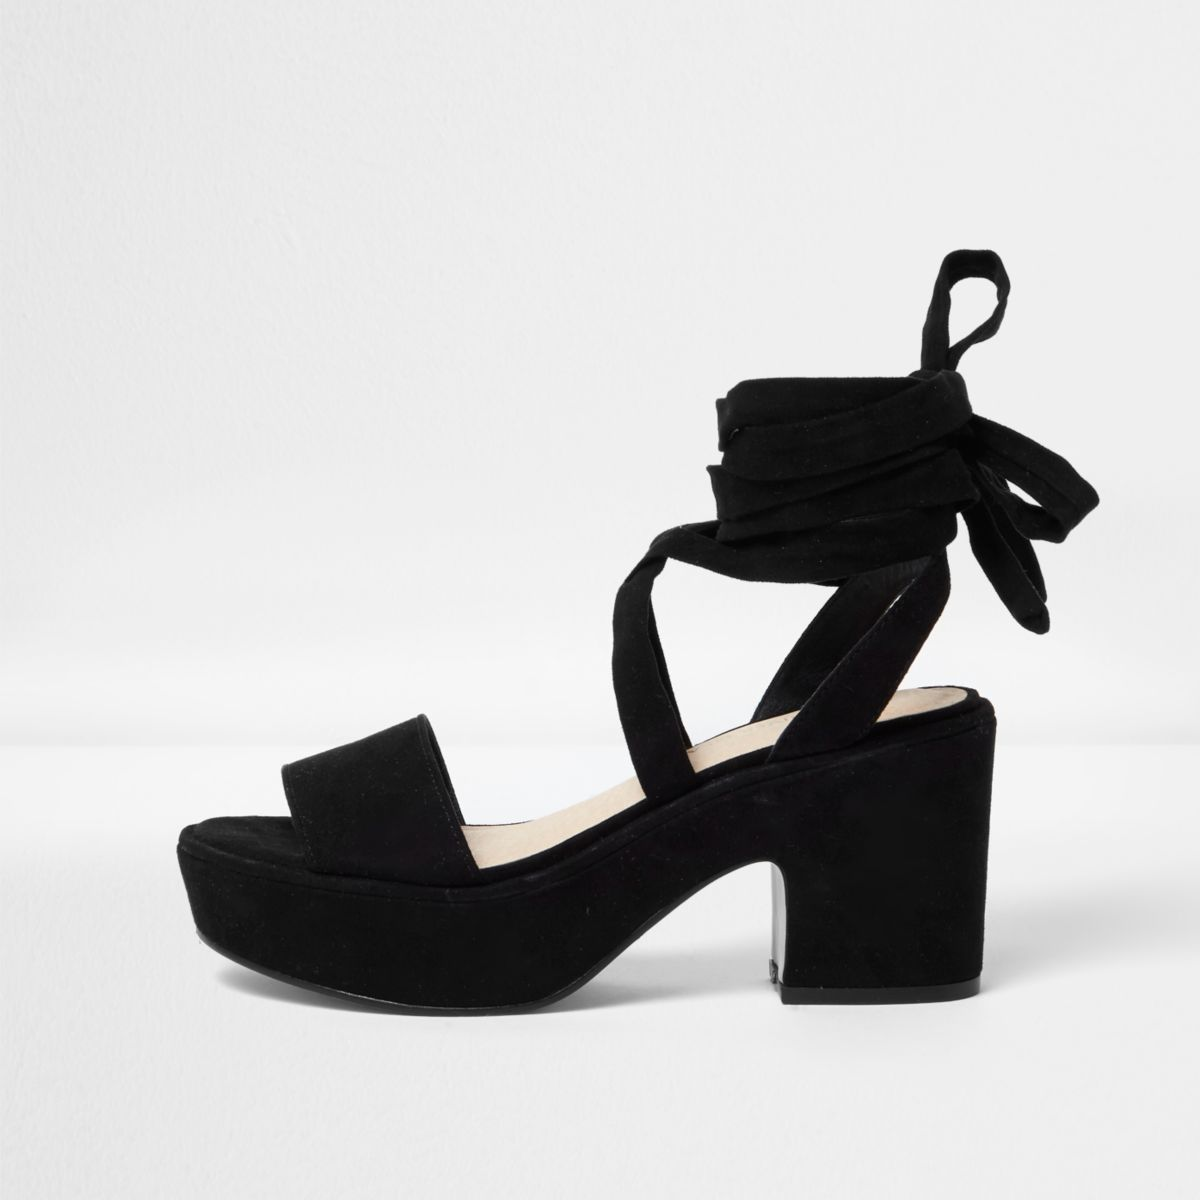 Black soft tie platform mid heel sandals